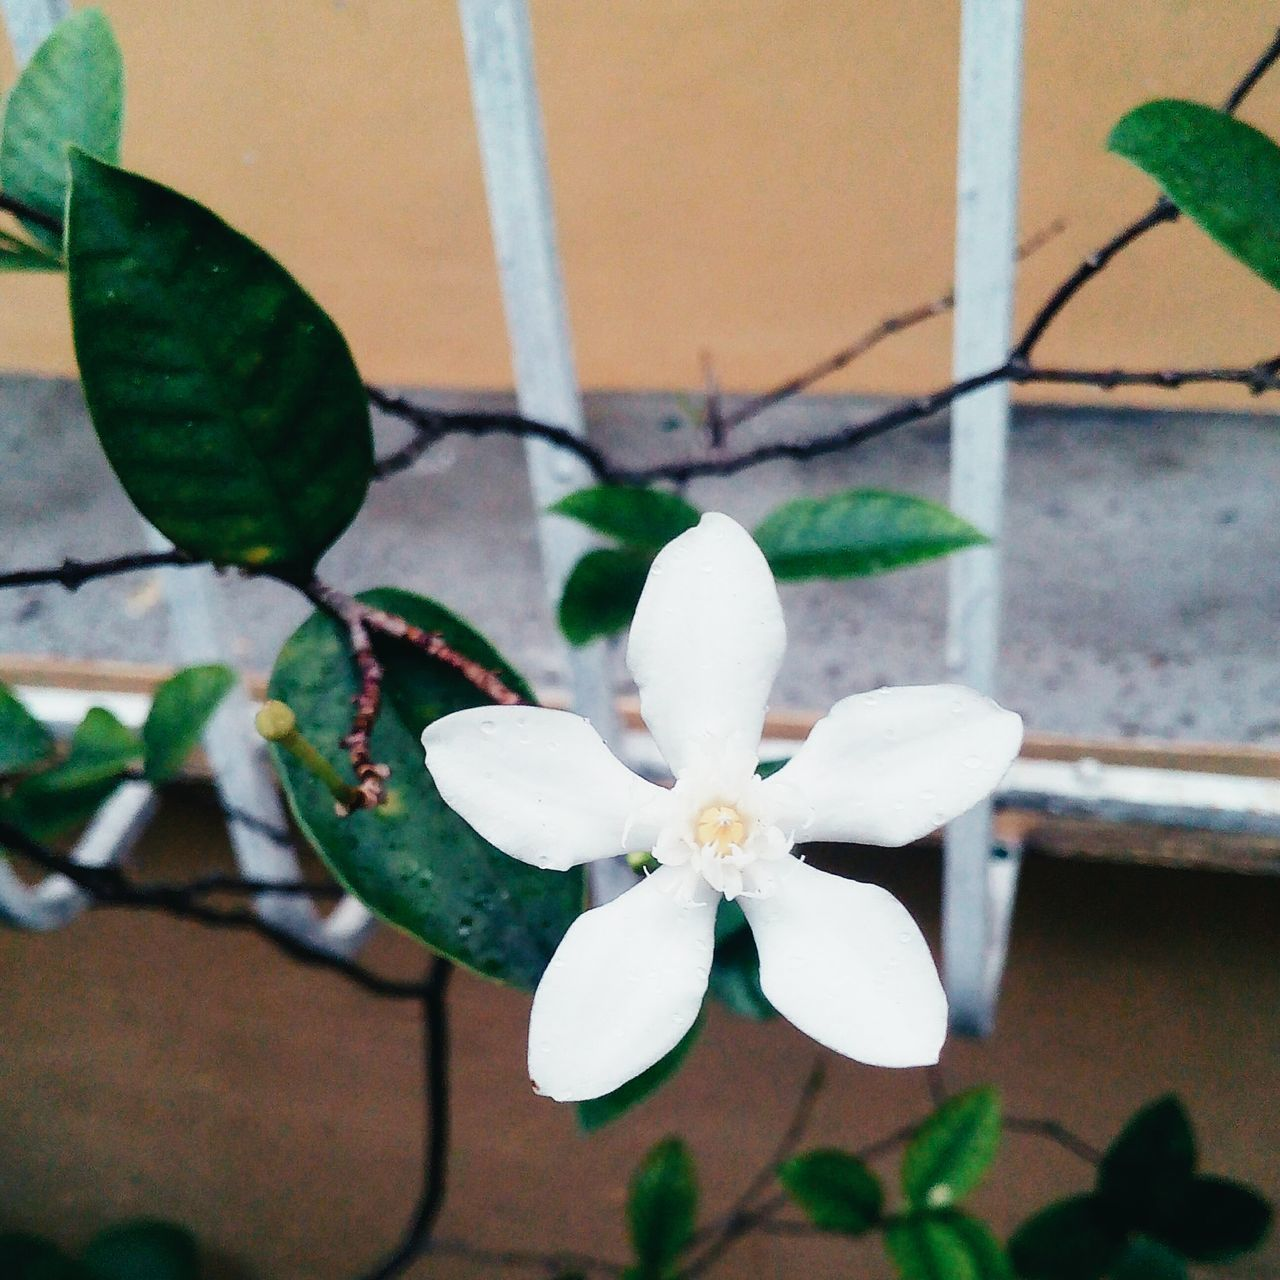 flower, growth, fragility, white color, petal, beauty in nature, leaf, nature, day, plant, freshness, close-up, no people, flower head, outdoors, blooming, architecture, periwinkle